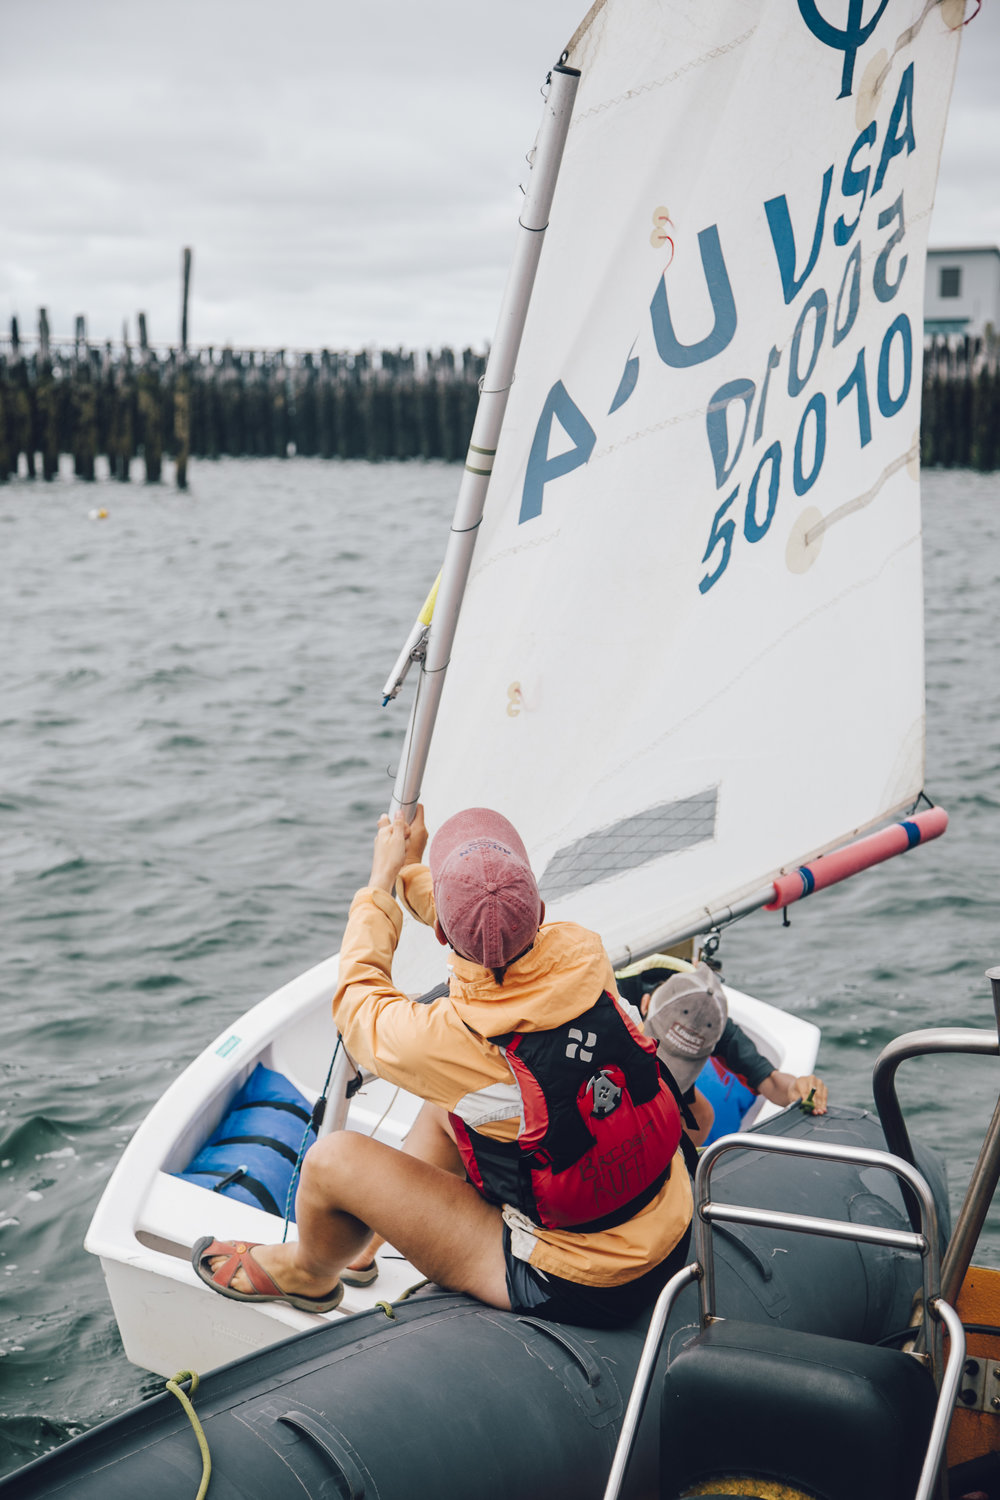 Bridget Ruff helps students set out to sail. Photo © Jenny Rebecca Nelson